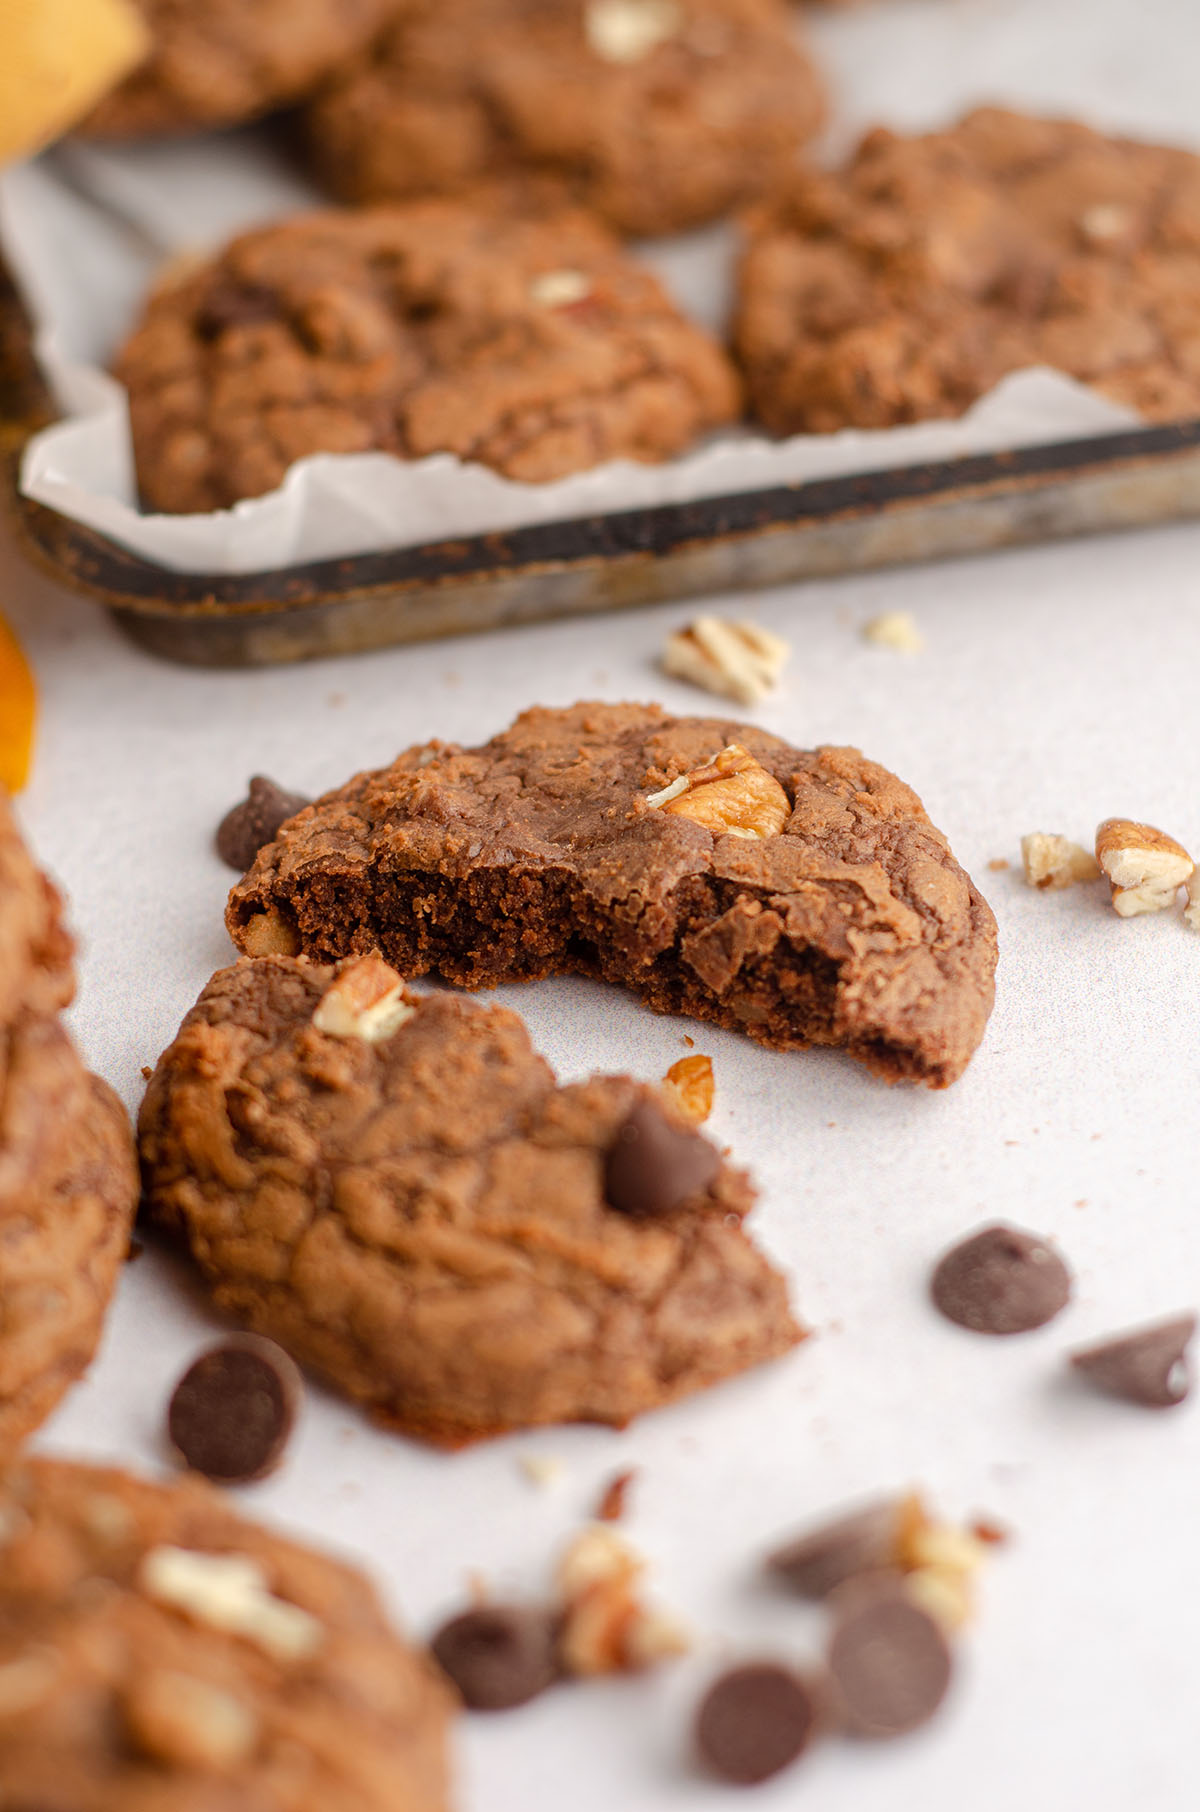 a brownie cookie broken in half with chocolate chips and nuts scattered around it